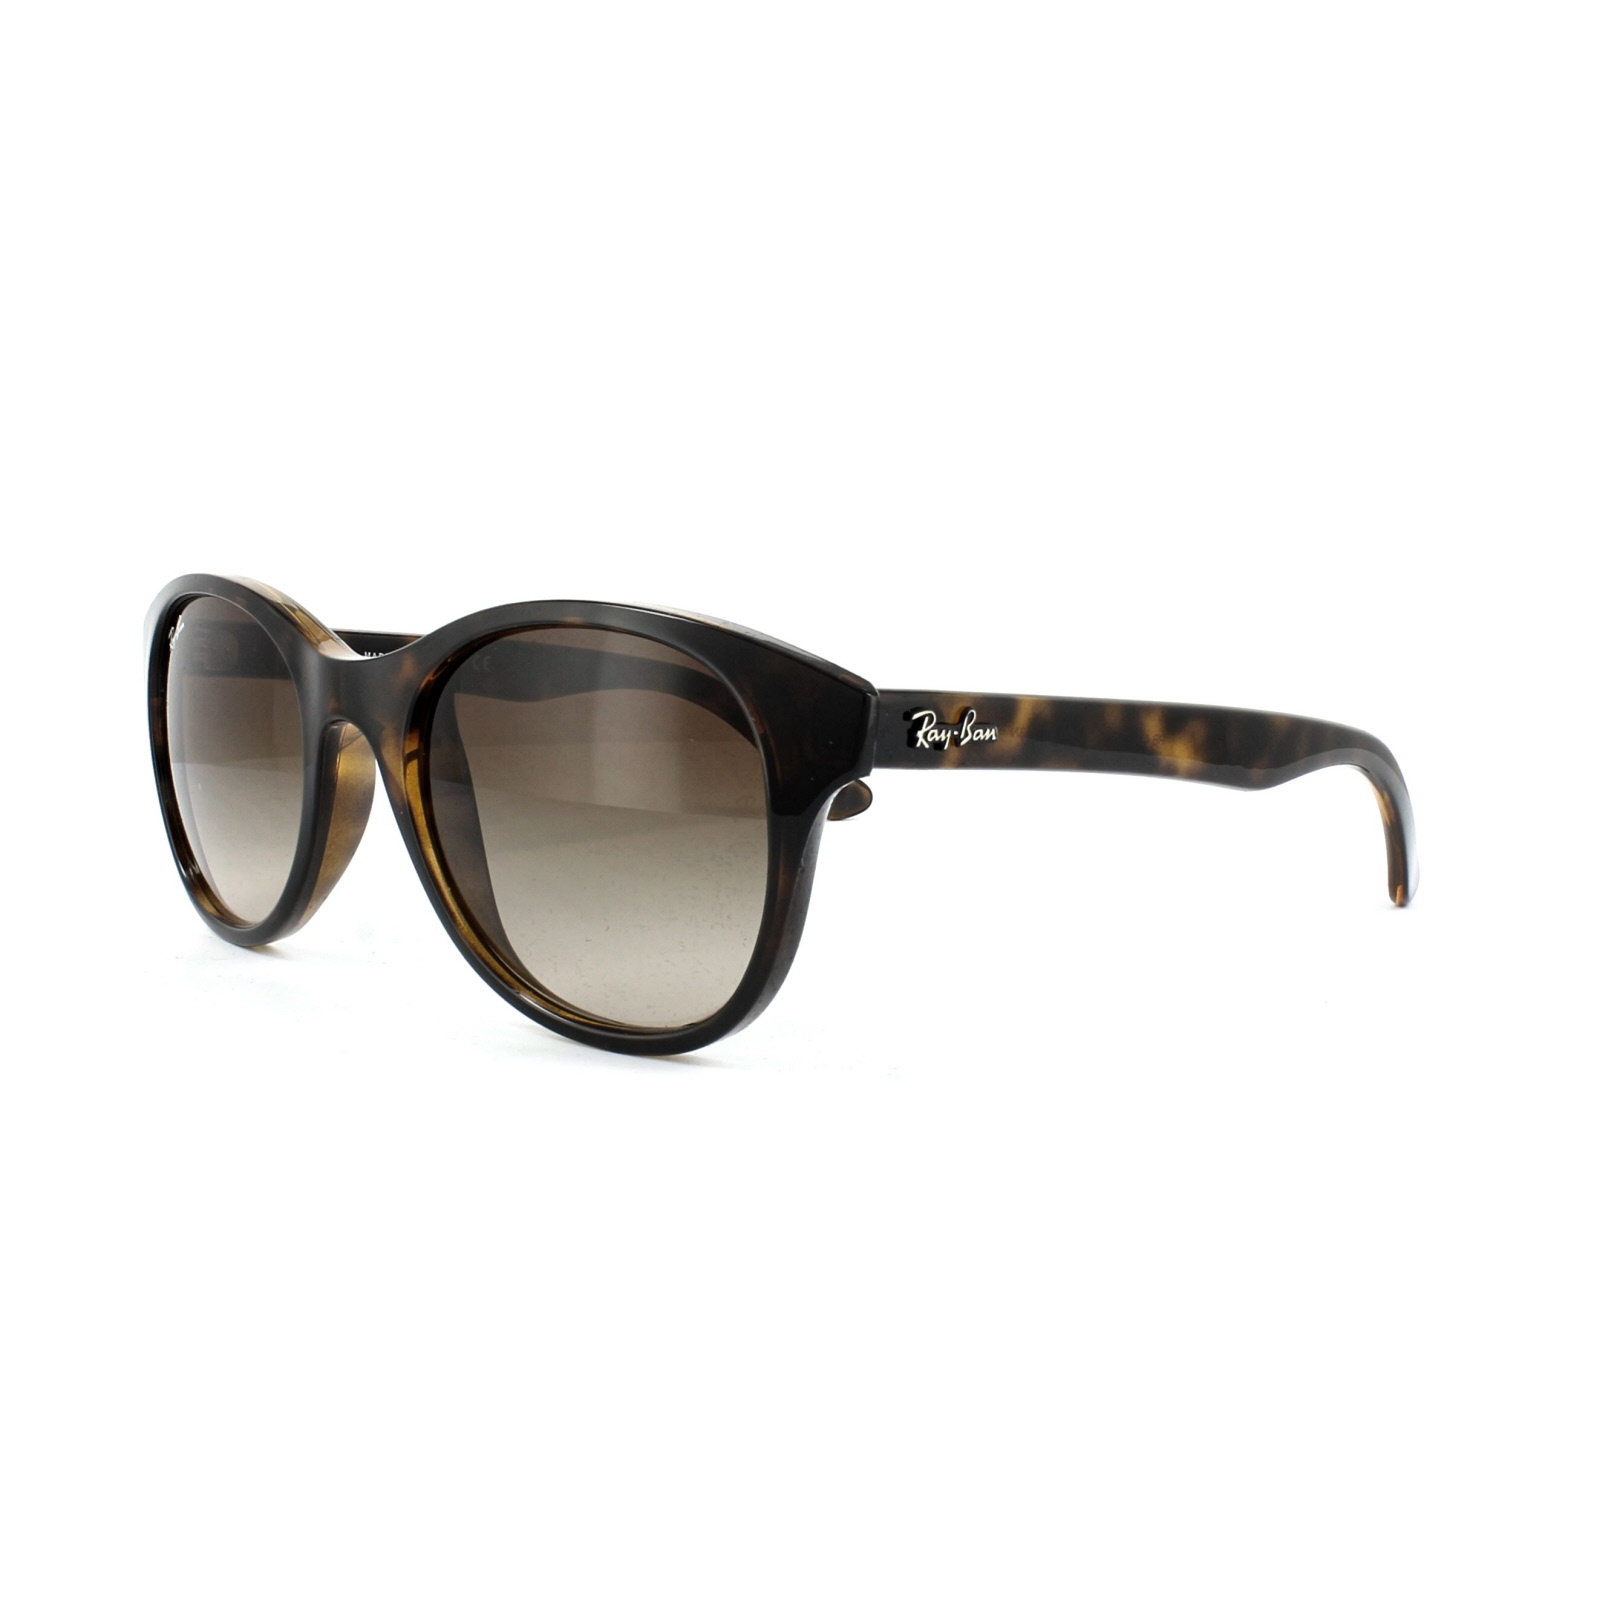 415a51554fa ... cheapest sentinel ray ban sunglasses 4203 710 13 havana brown gradient  bc1f7 1e10c